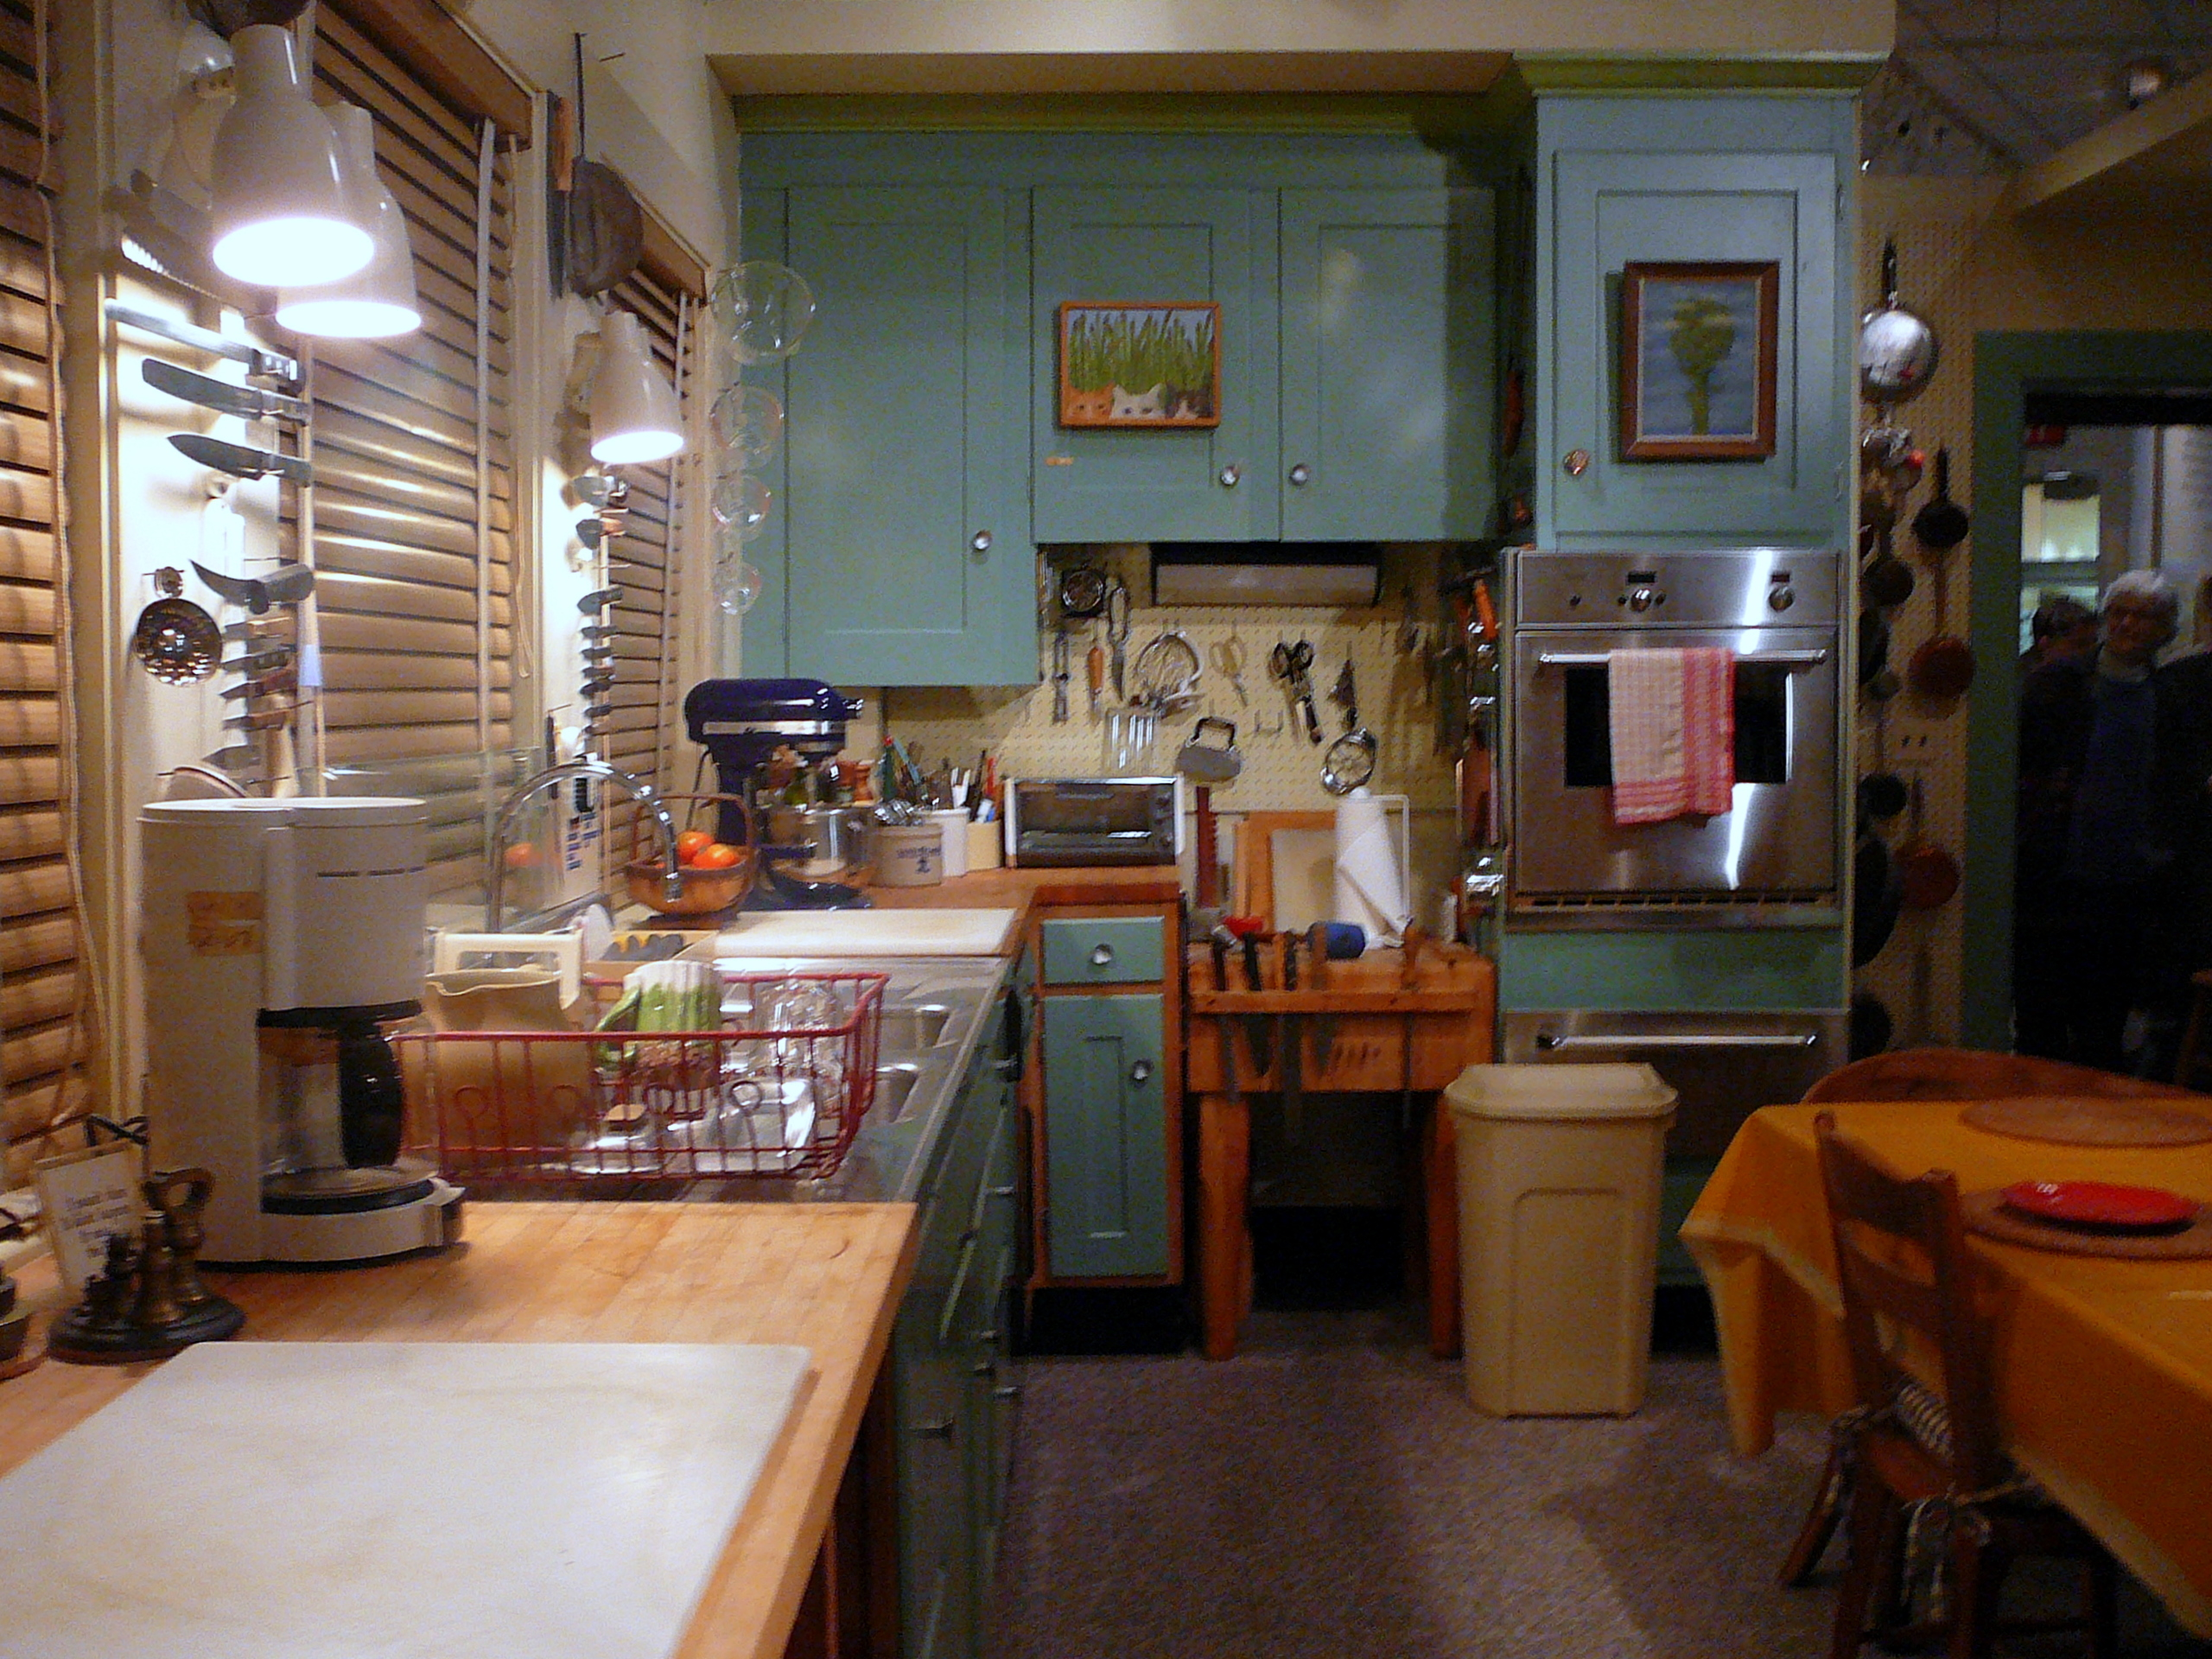 One Bedroom Apartment In The Bronx Julia Child Spy And Chefspeaking For A Change